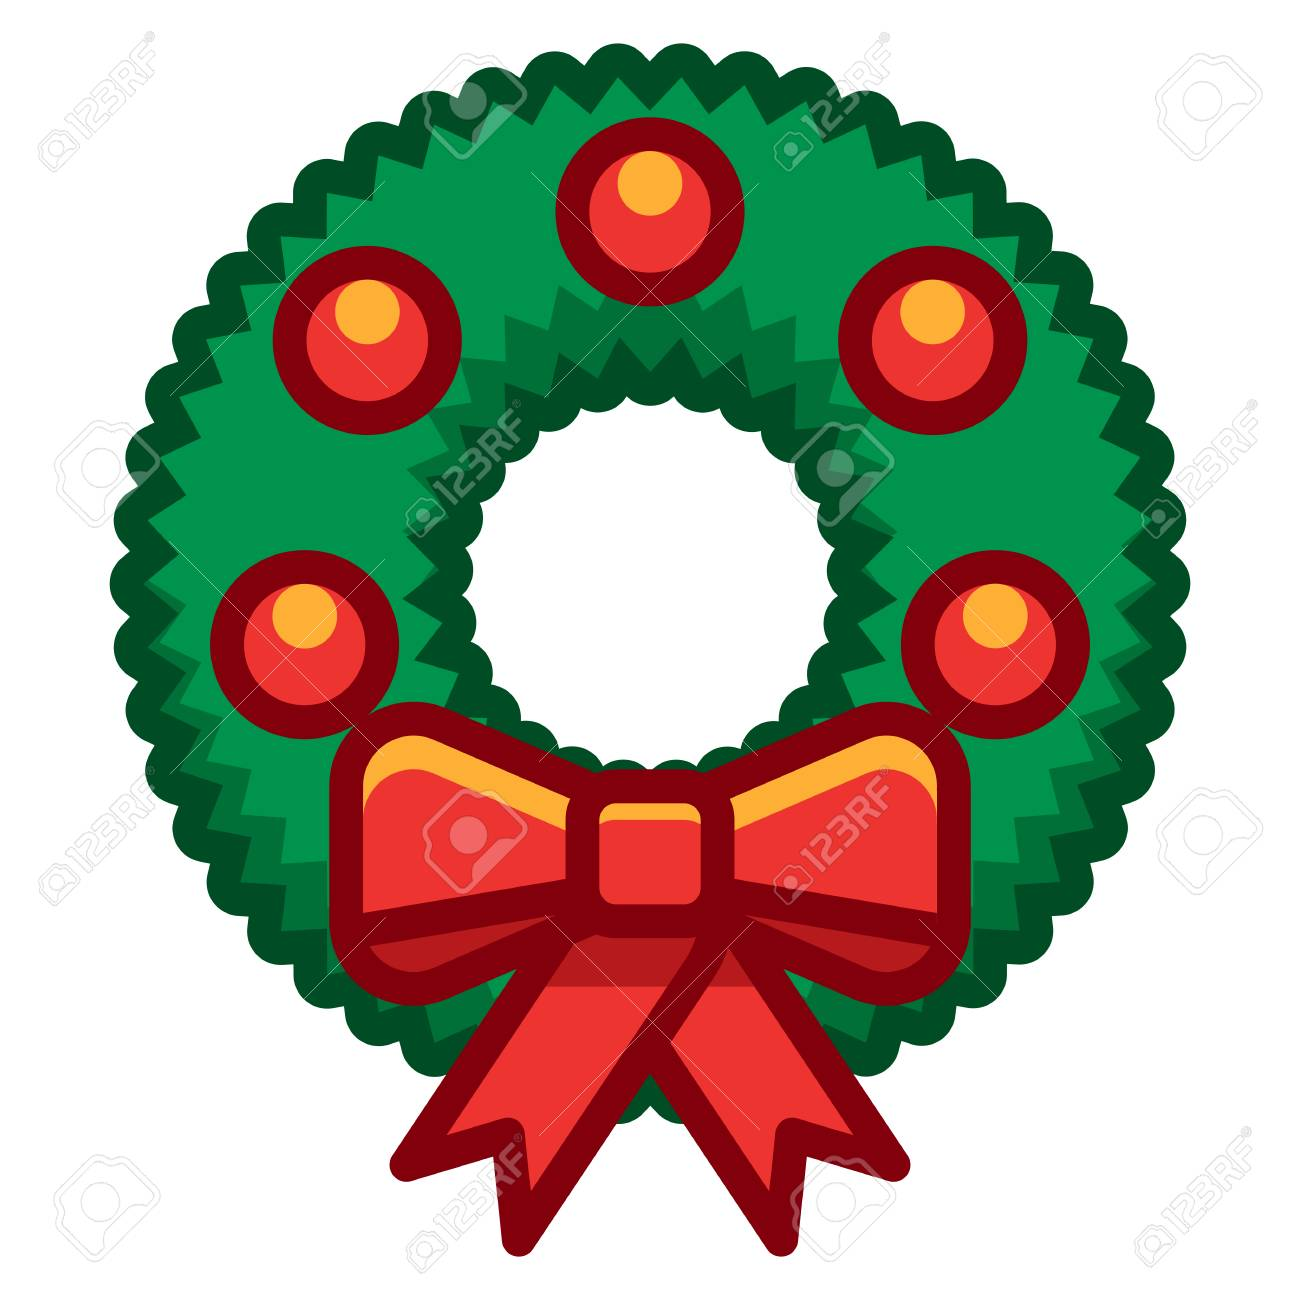 Cartoon Christmas Wreath Illustration